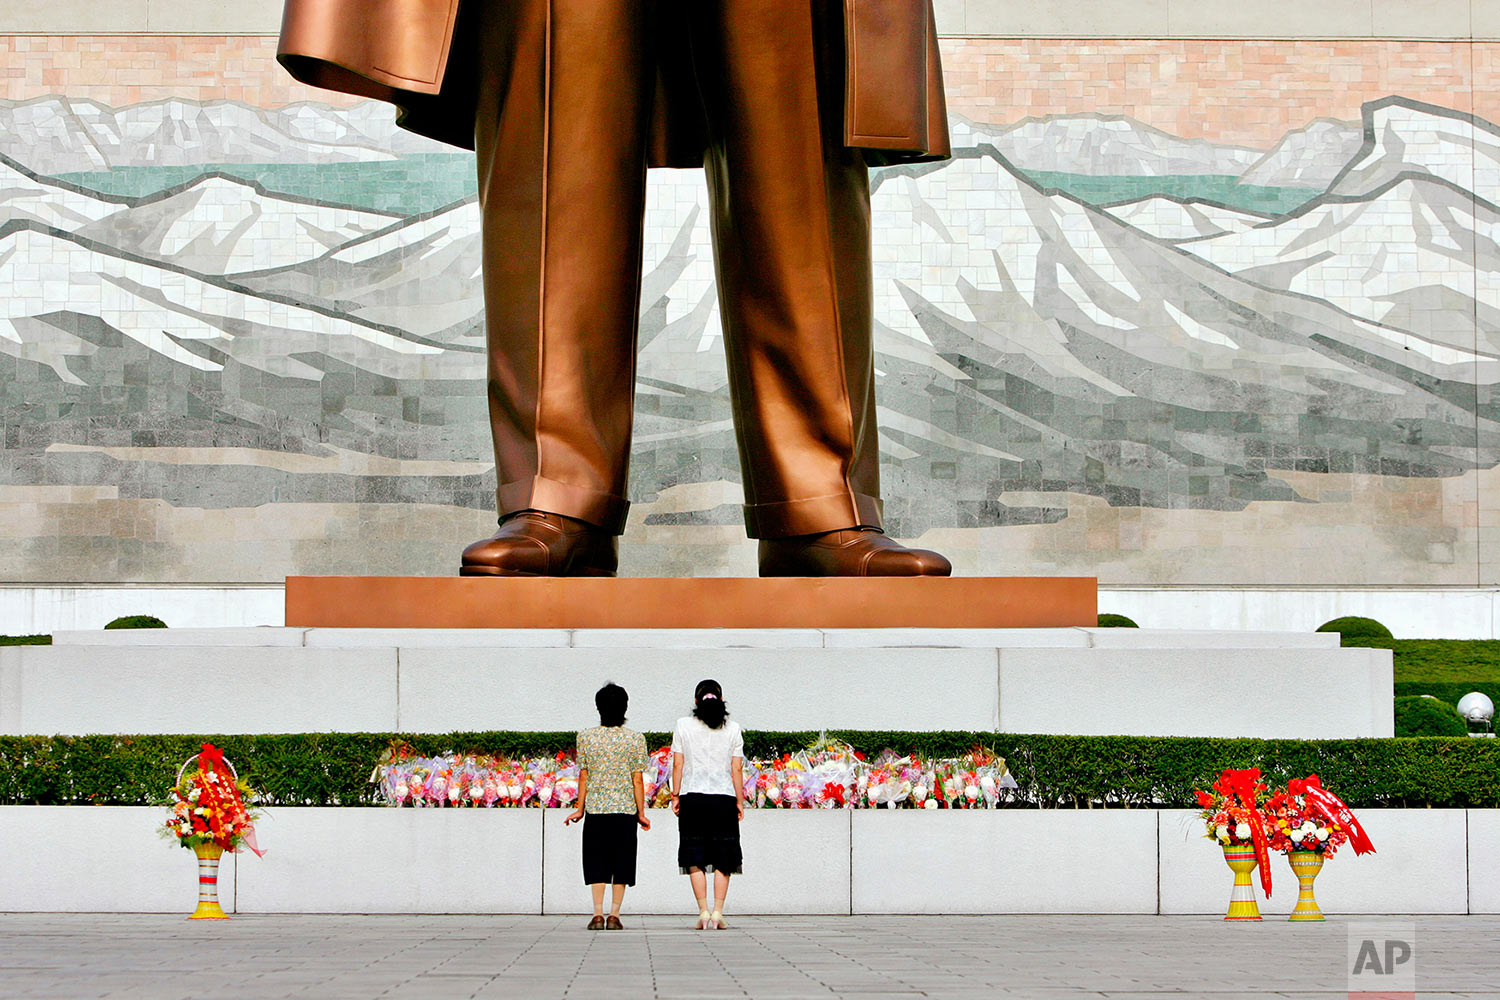 Women prepare to bow before the statue of late North Korean leader Kim Il Sung, erected on Mansu Hill in Pyongyang, North Korea, on Aug. 5, 2007. (AP Photo/Elizabeth Dalziel)